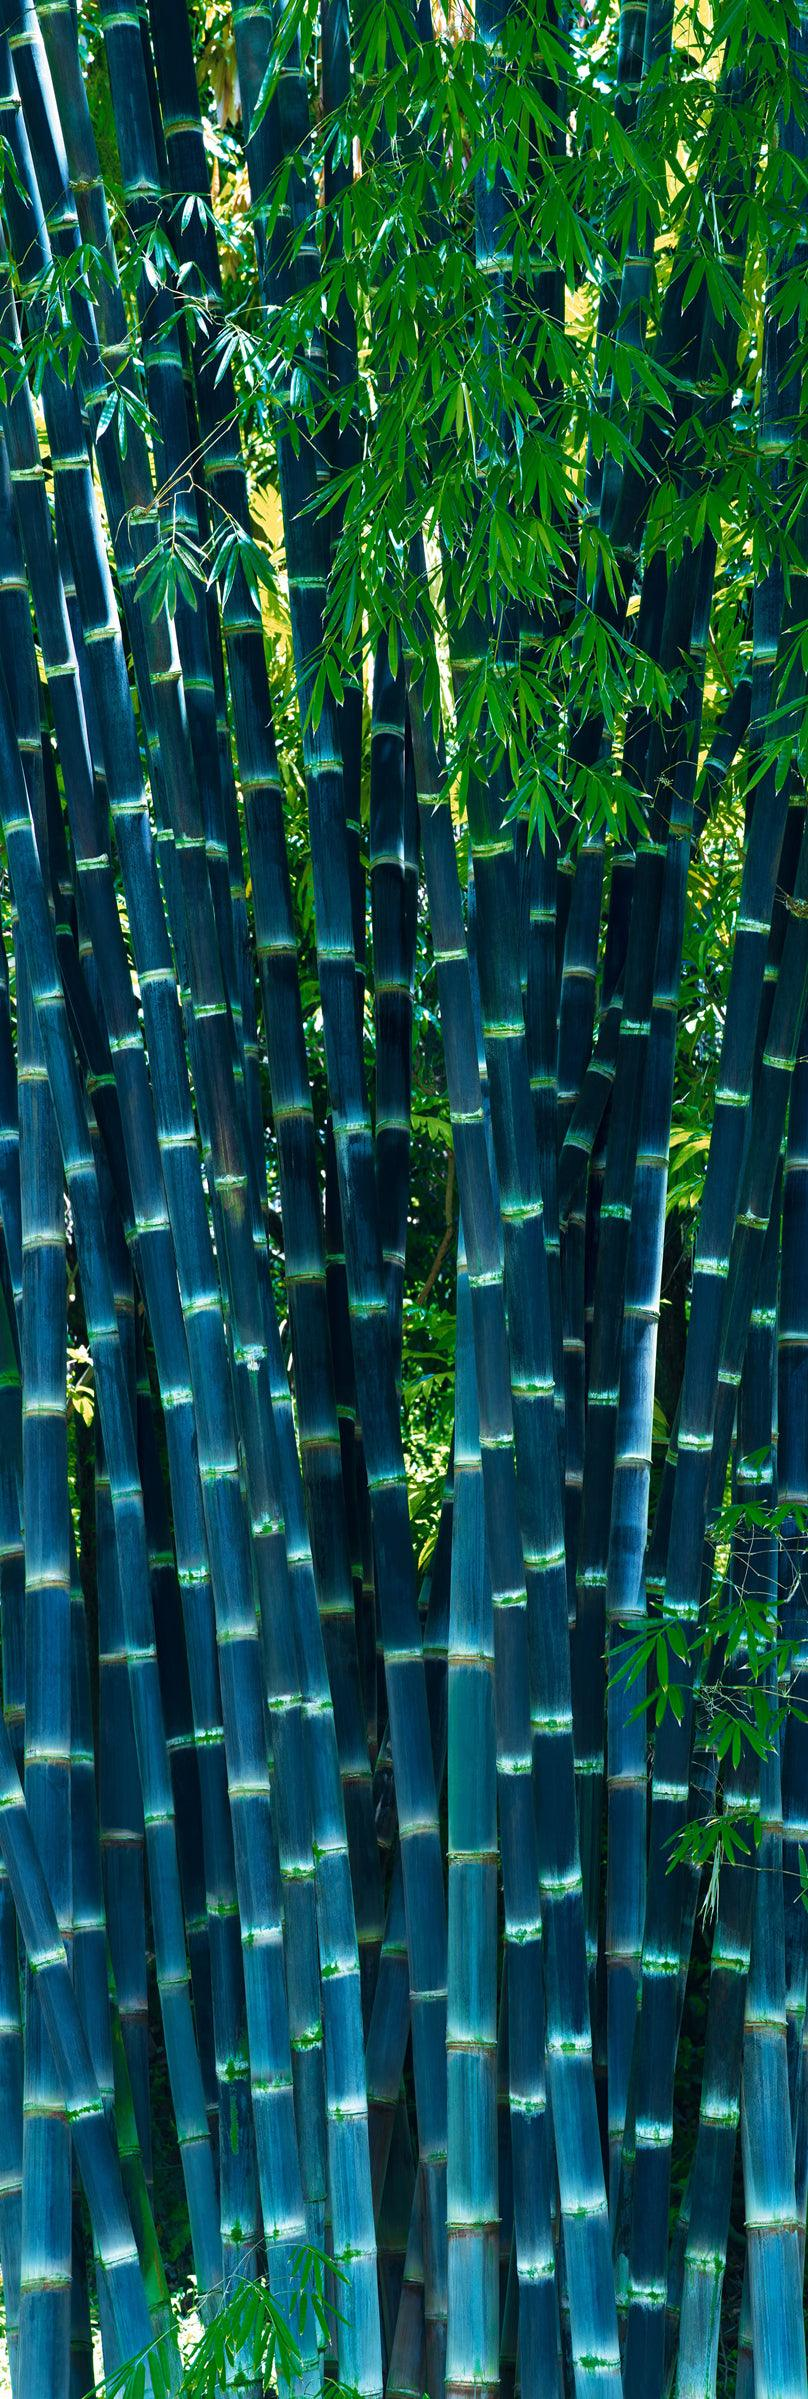 Section of tall blue bamboo in a tropical forest in Maui Hawaii